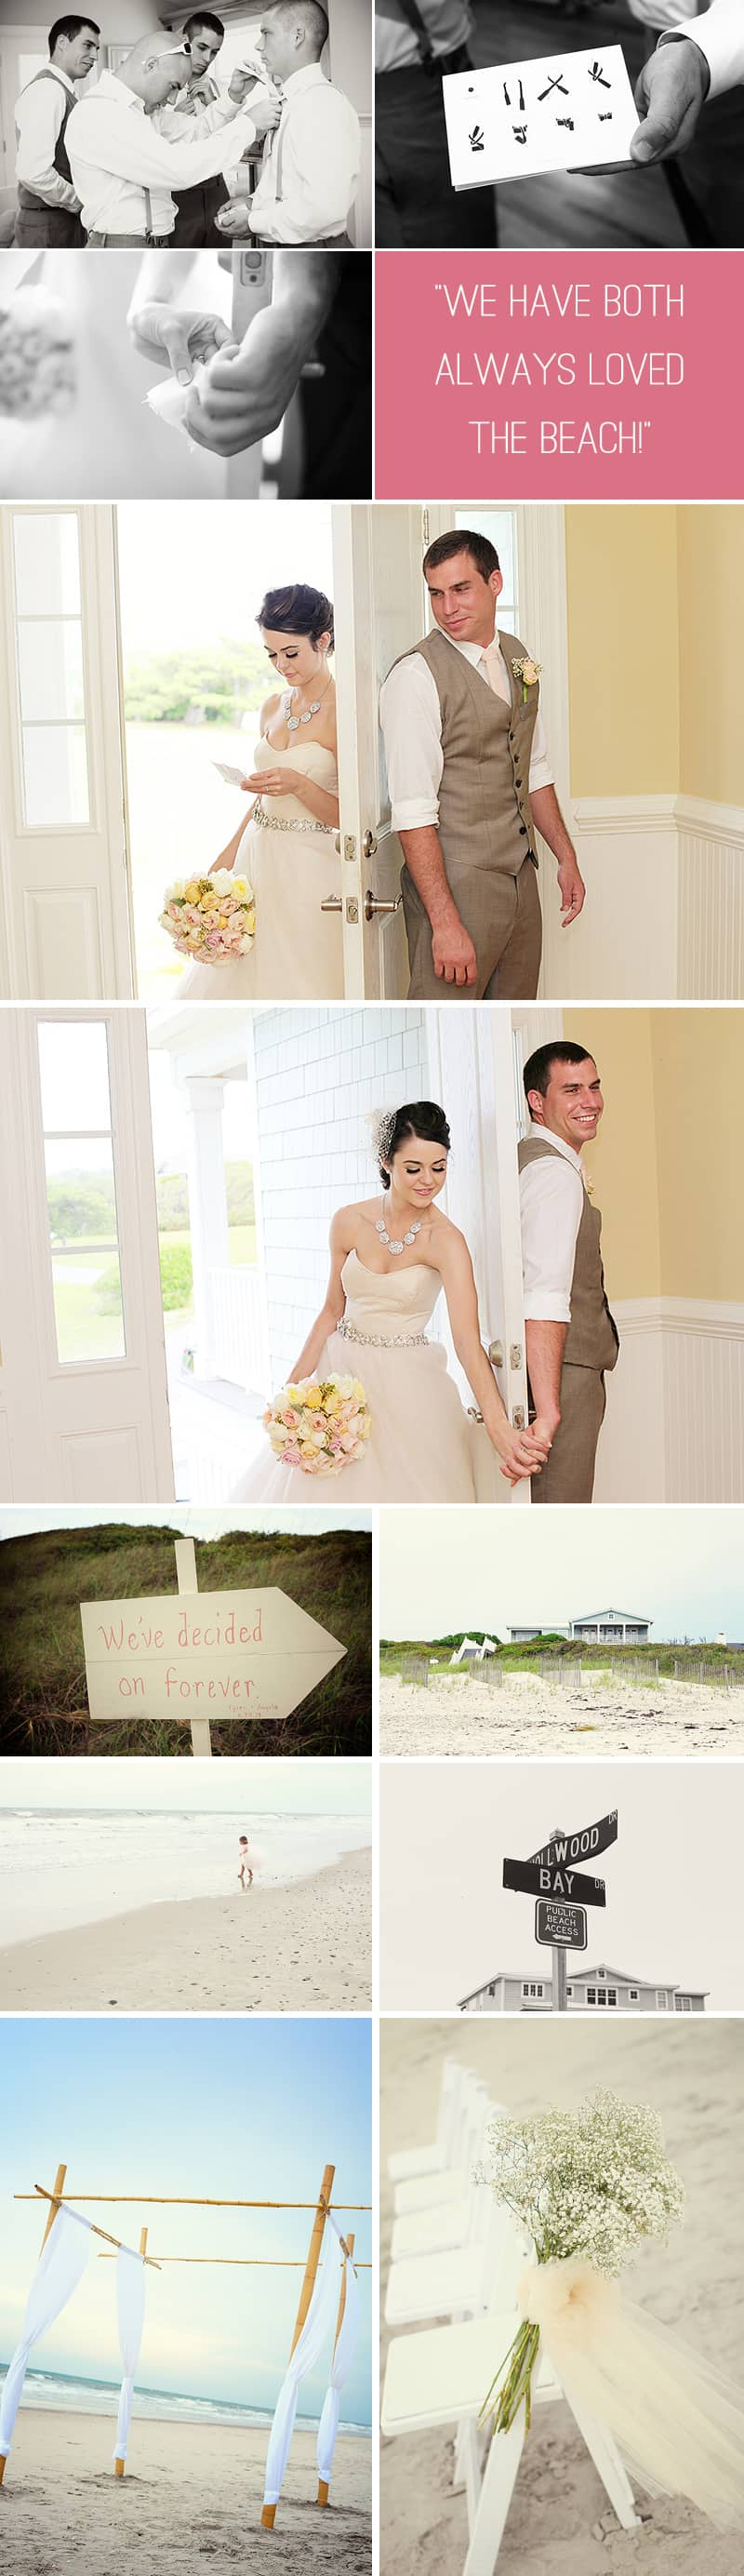 Intimate Beach Wedding First Look